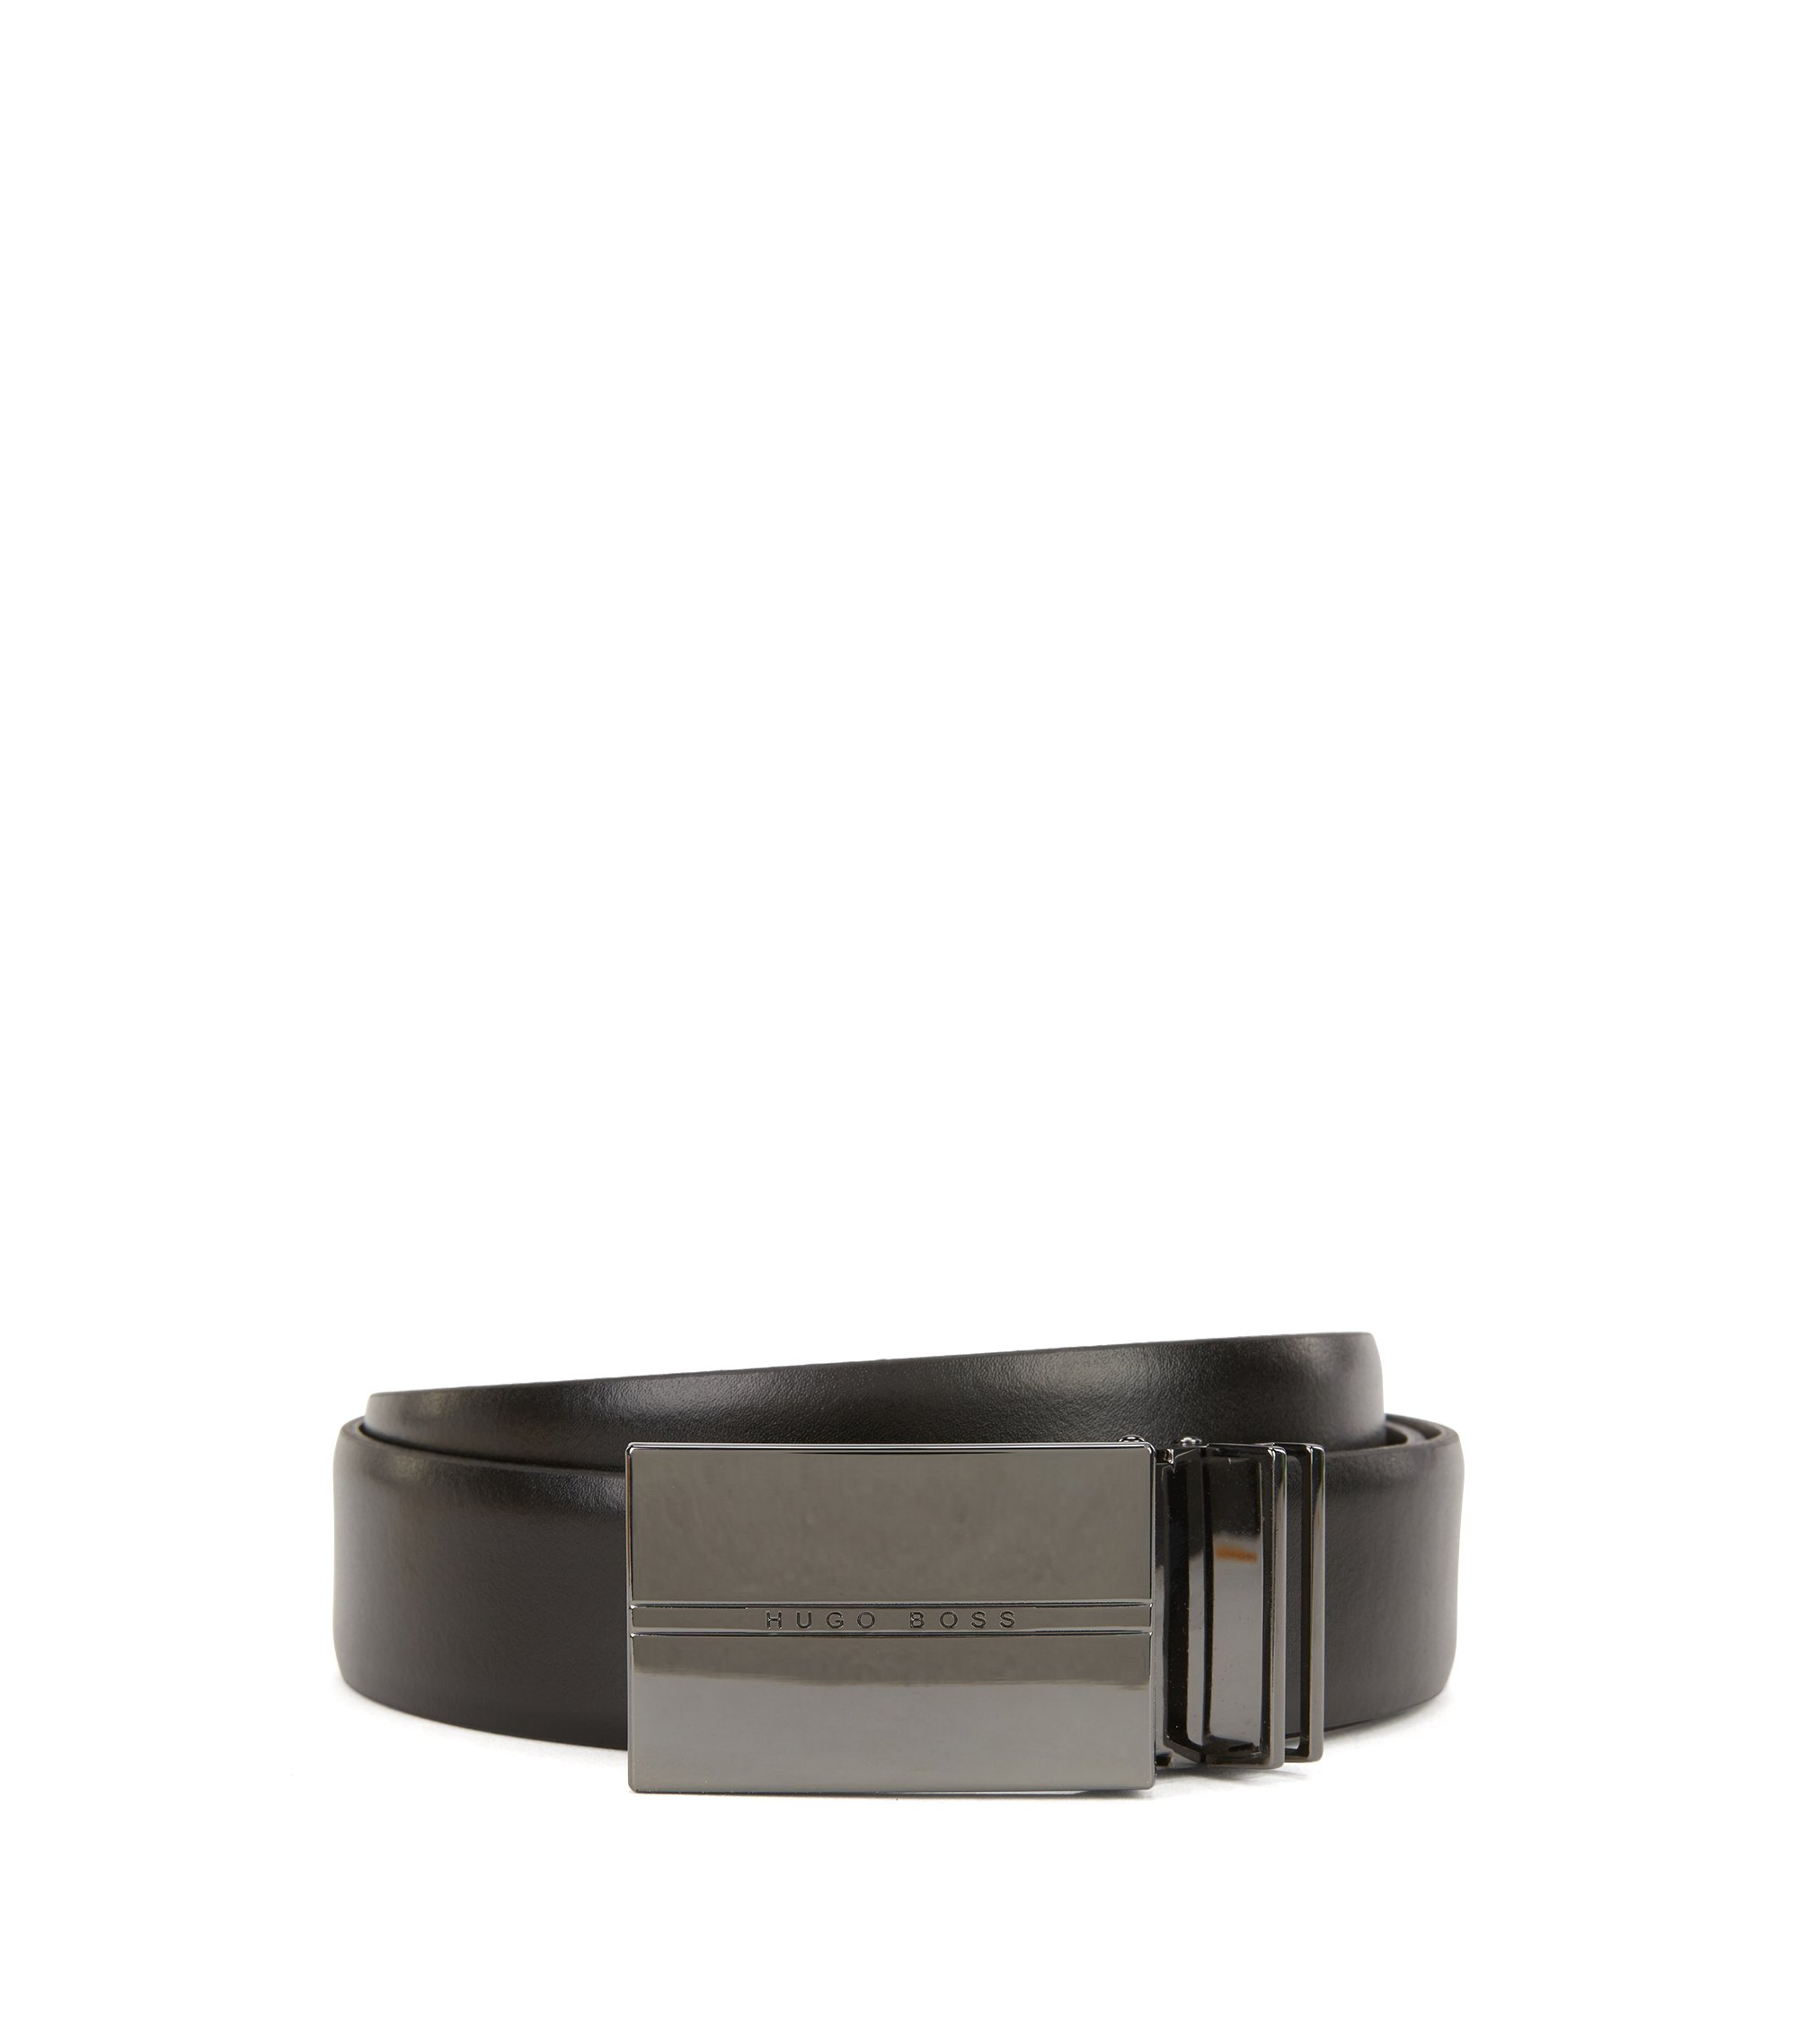 Reversible belt in smooth leather with polished gunmetal double-buckle gift set, Black